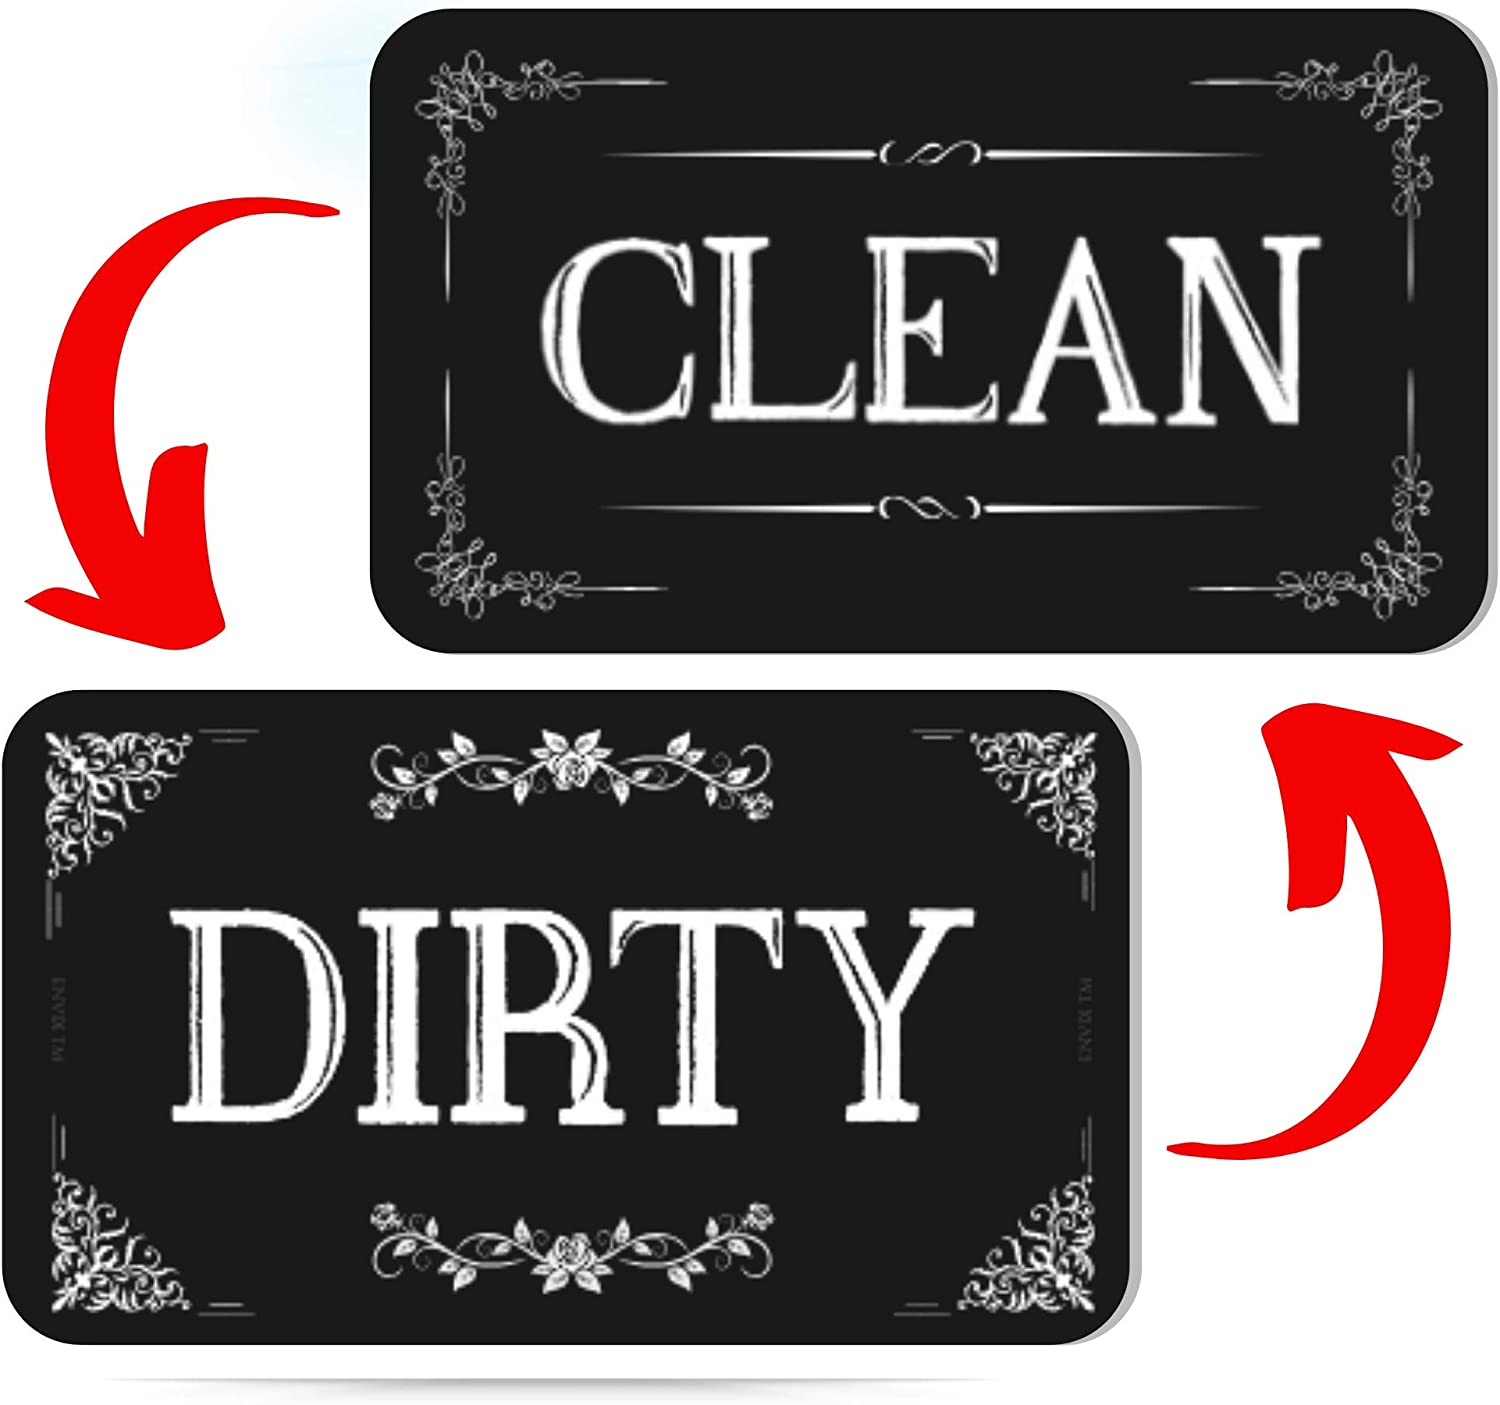 Clean Dirty Dishwasher Magnet Sign - Strongest Magnet Double Sided Flip - With Bonus Metal Magnetic Plate - Universal Kitchen Dish Washer Reversible Indicator